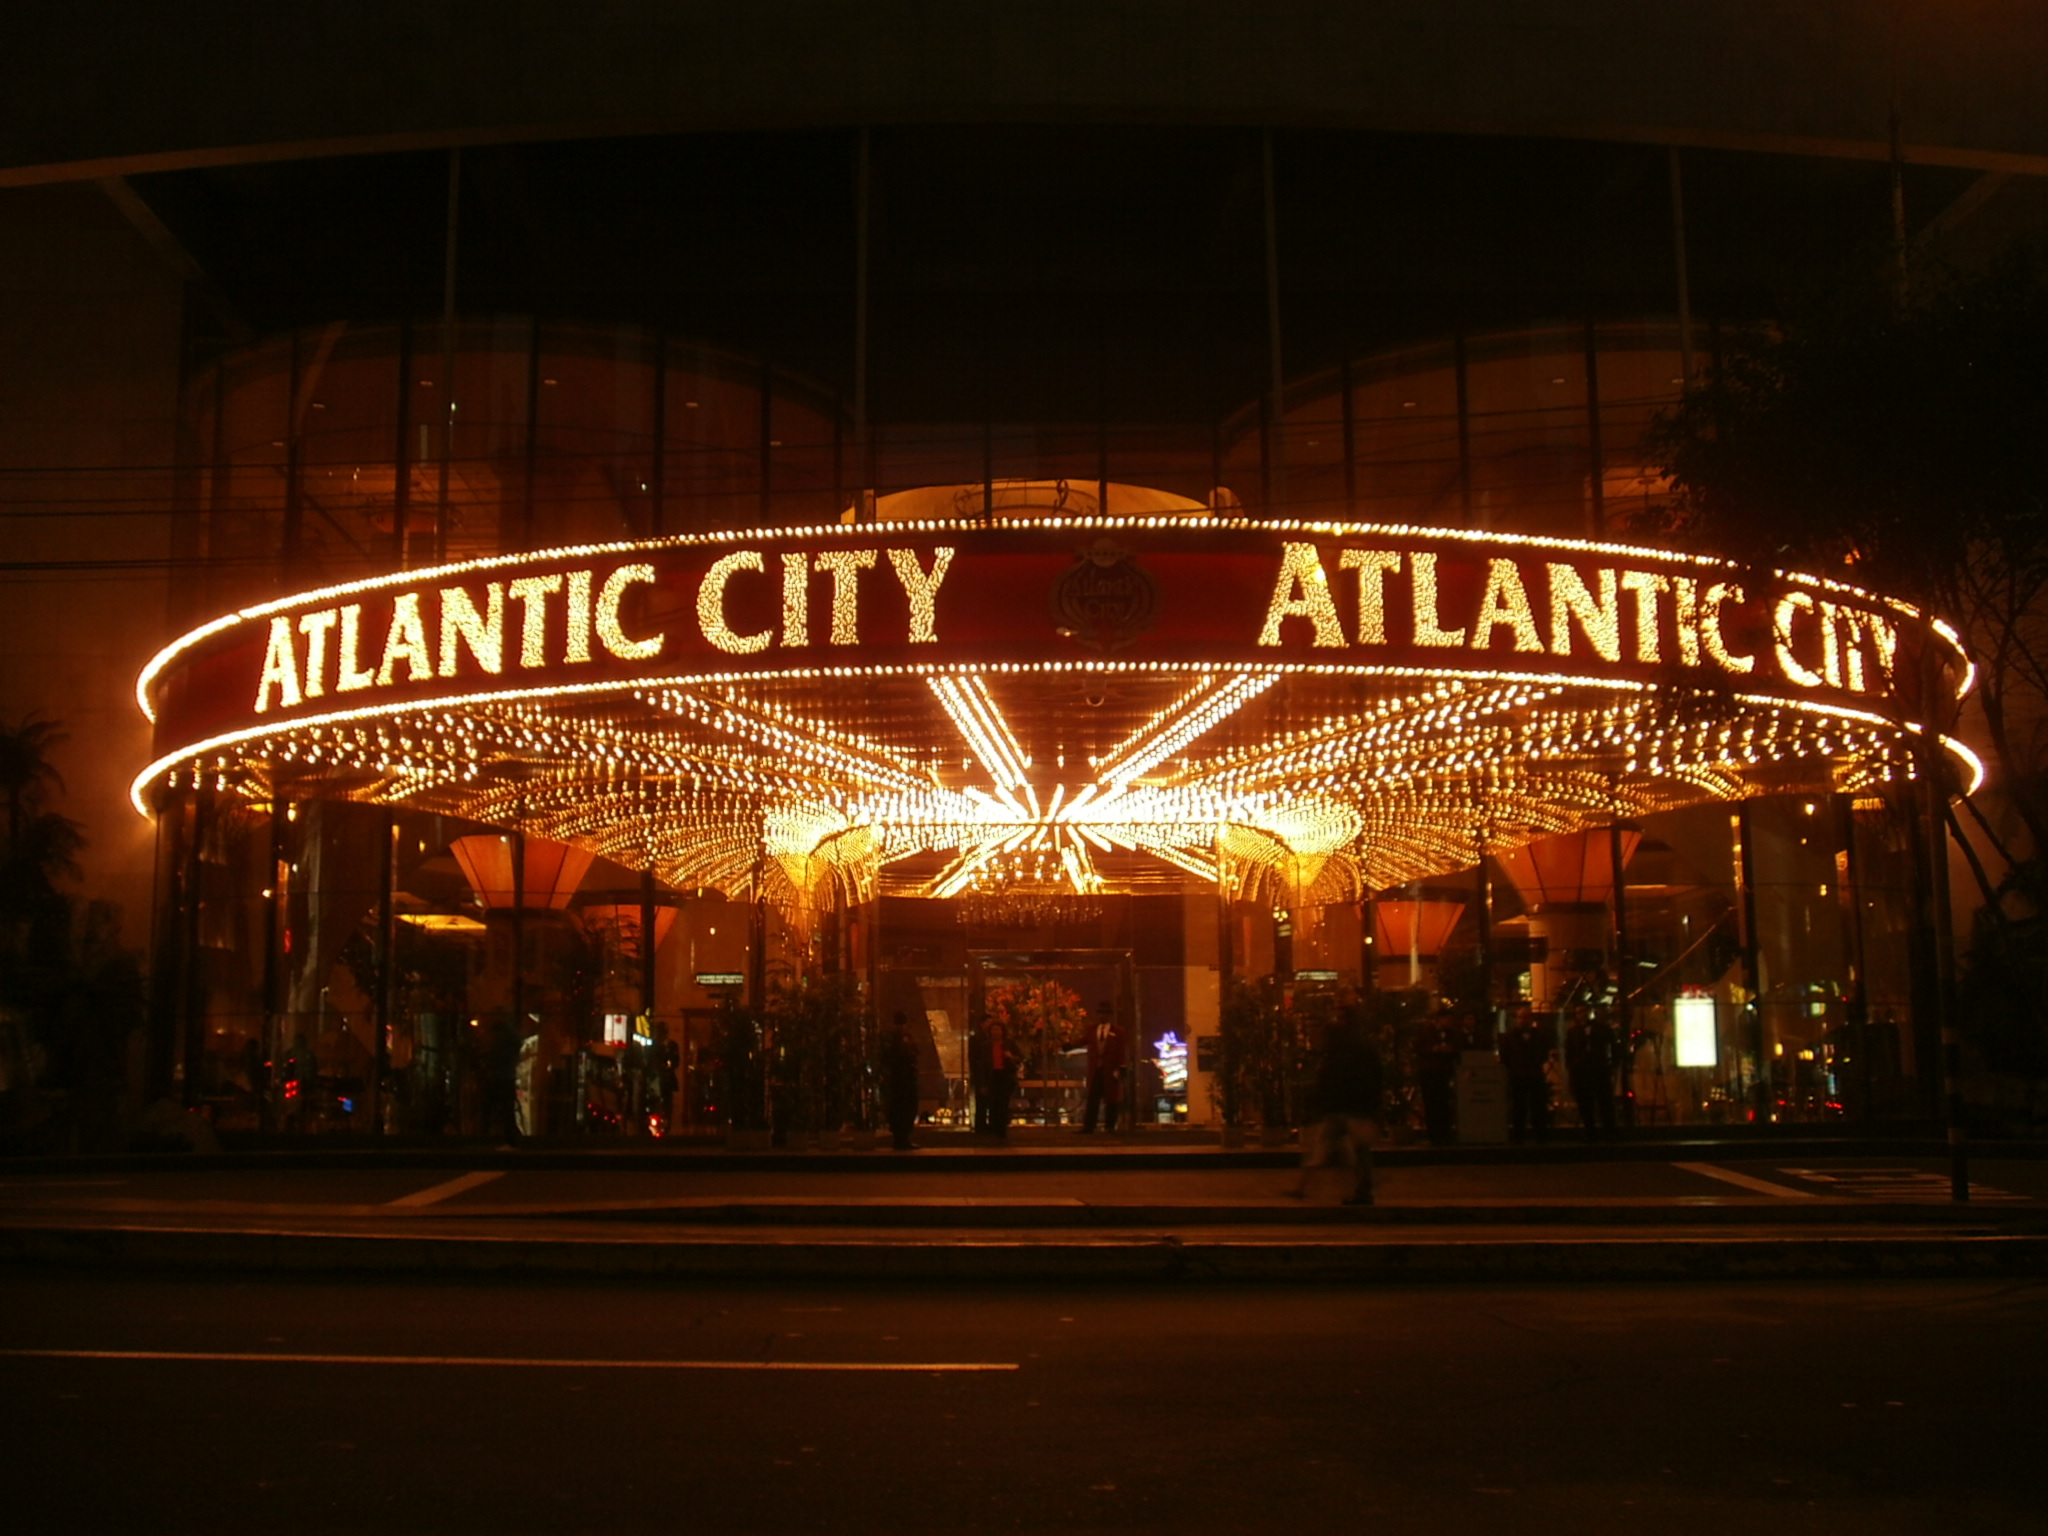 Atlantic City.jpg